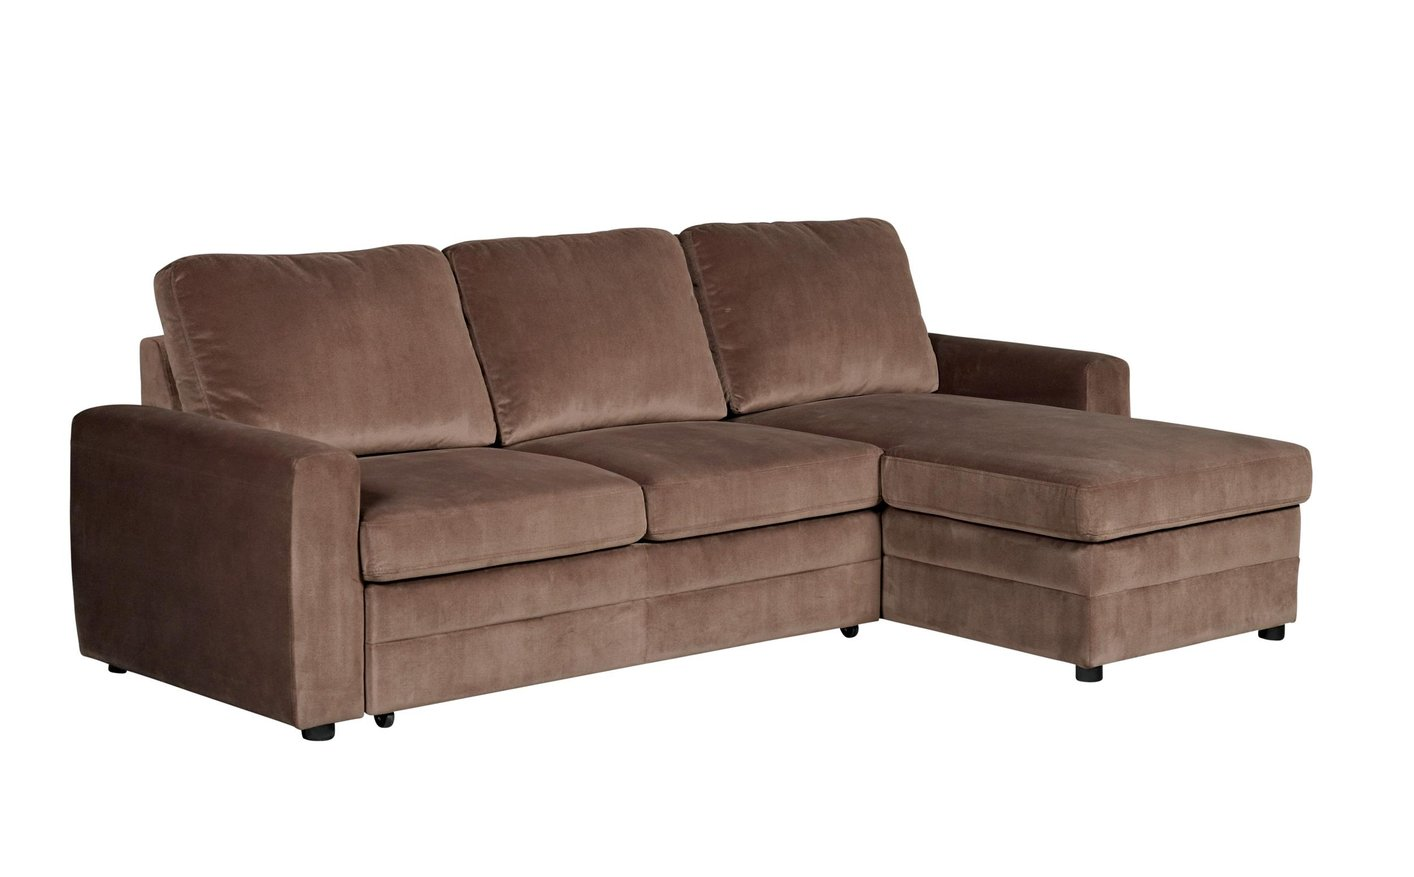 Coaster Gus 503871 Brown Fabric Sectional Sofa Steal A